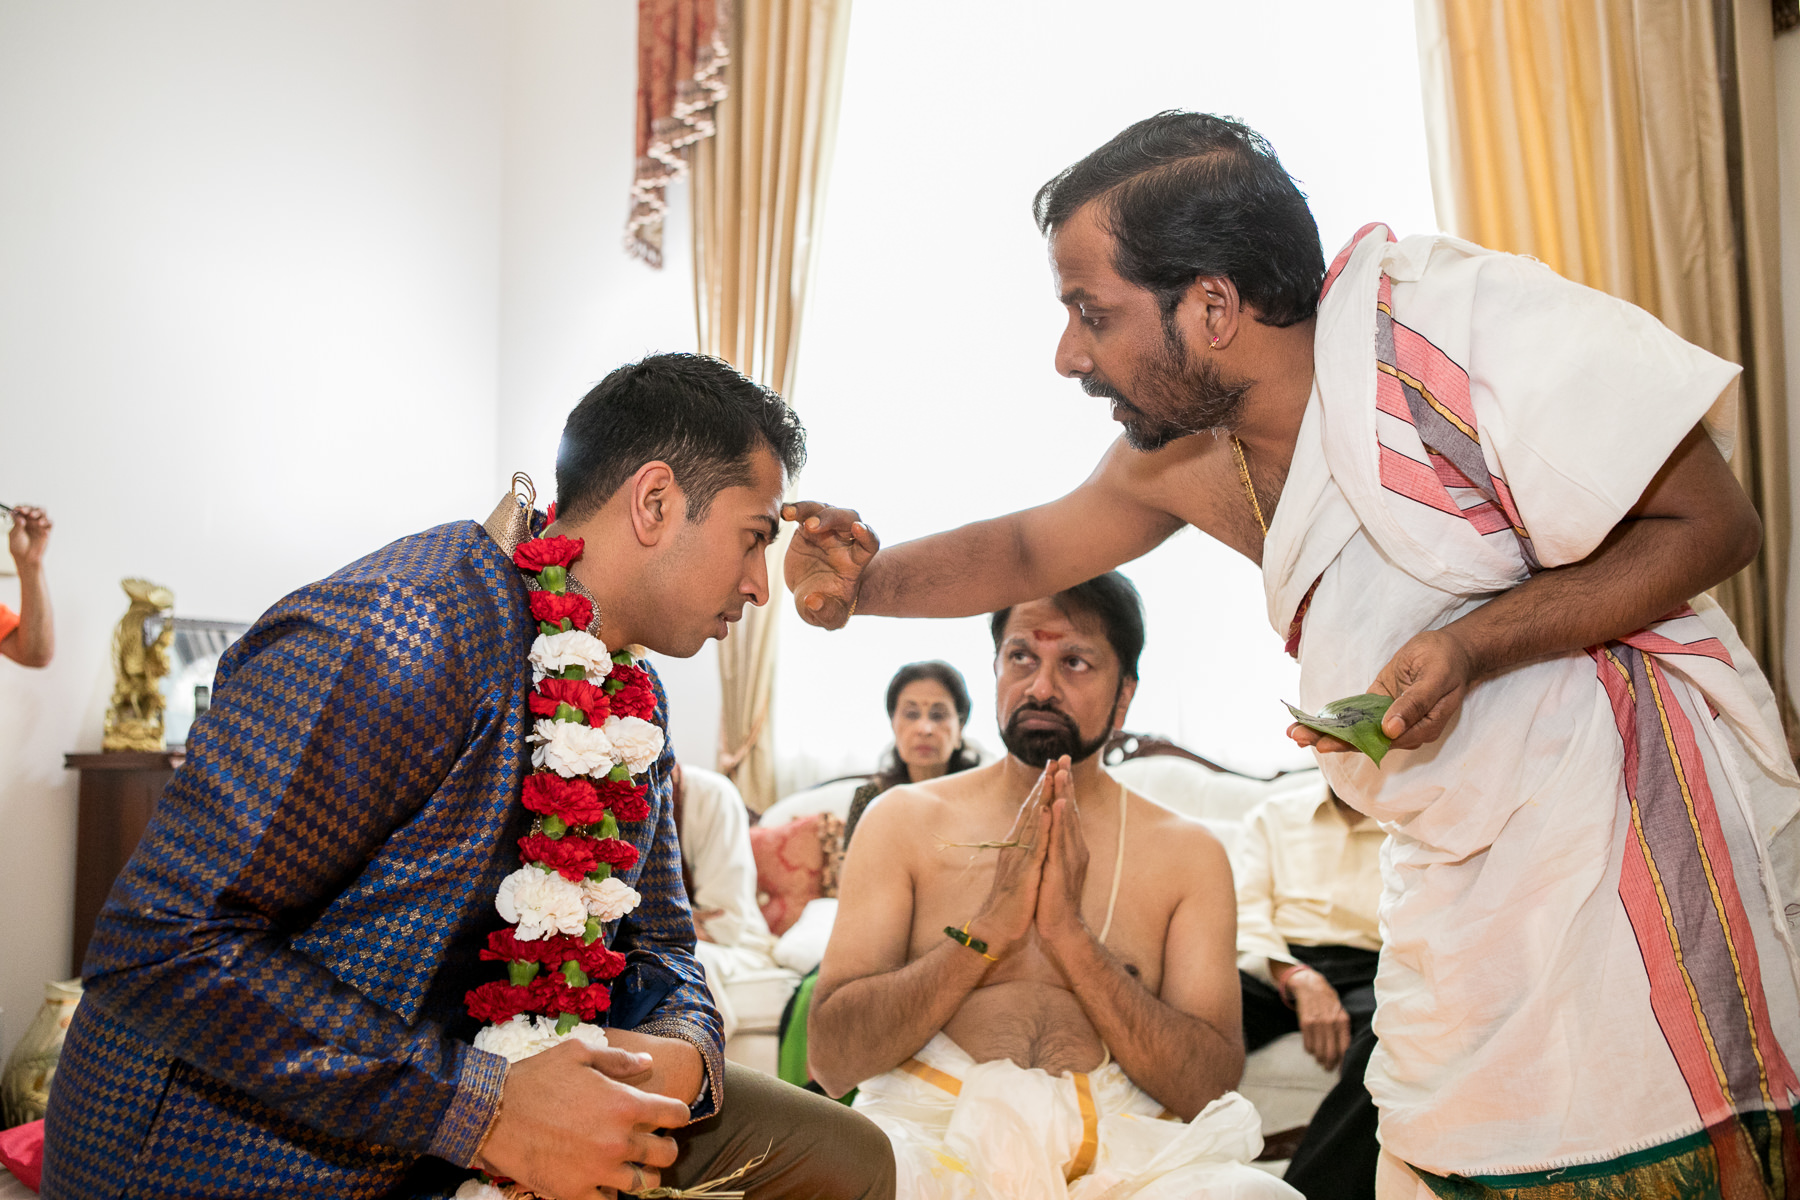 hindu priest applies sacred ash to groom's forehead during pre Indian wedding rituals